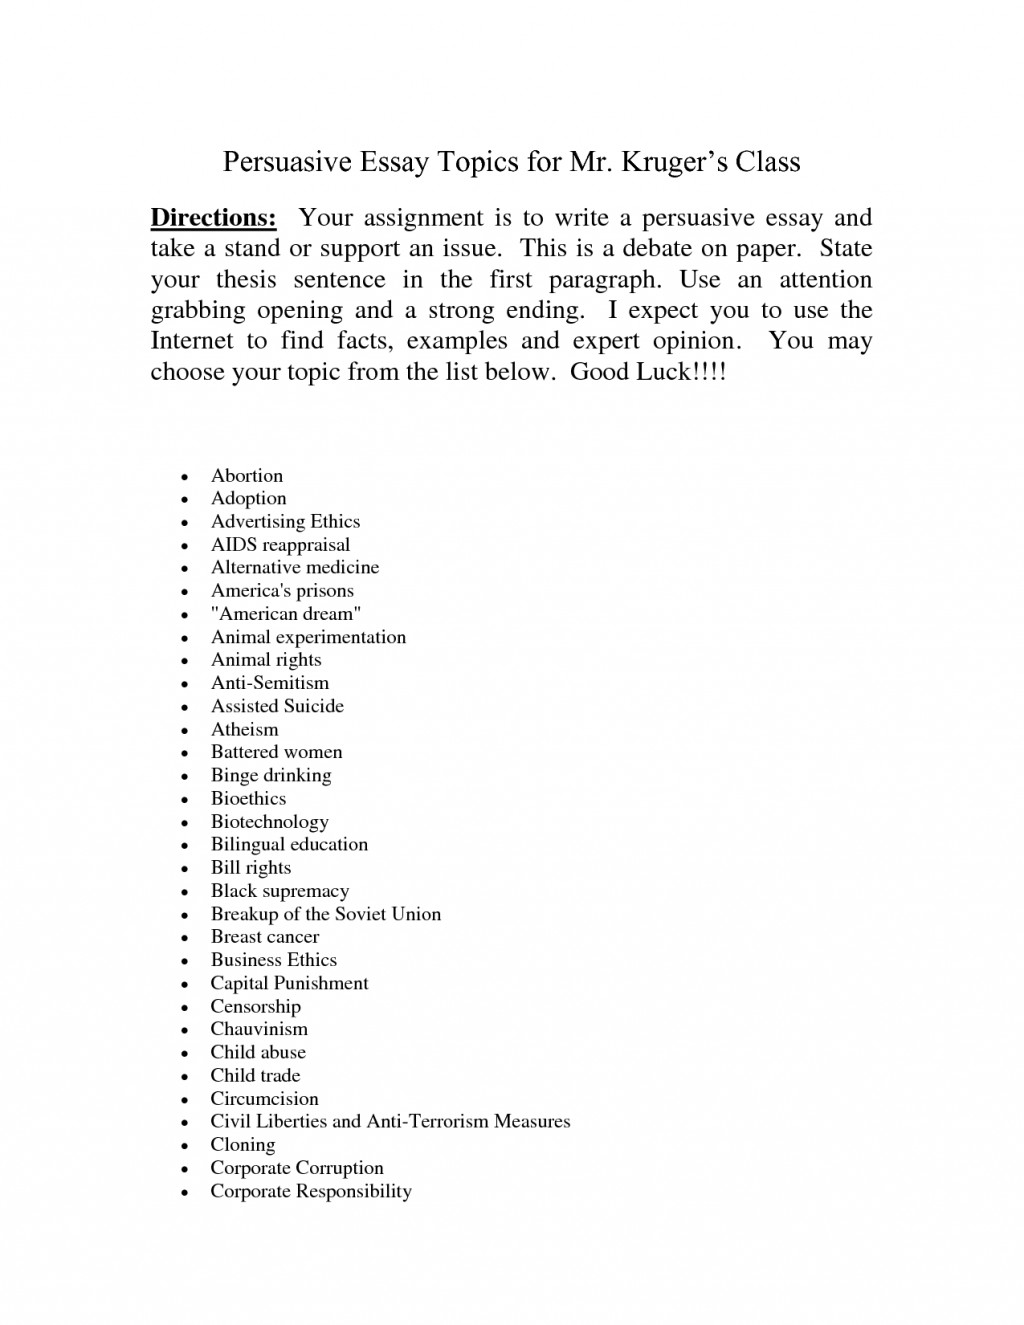 002 Essay Example Persuasive Topic Ideas Topics Outline Easy For High School Students College Essays Applicati 7th Graders Primary Middle Elementary Stunning 4th Grade Uk Large